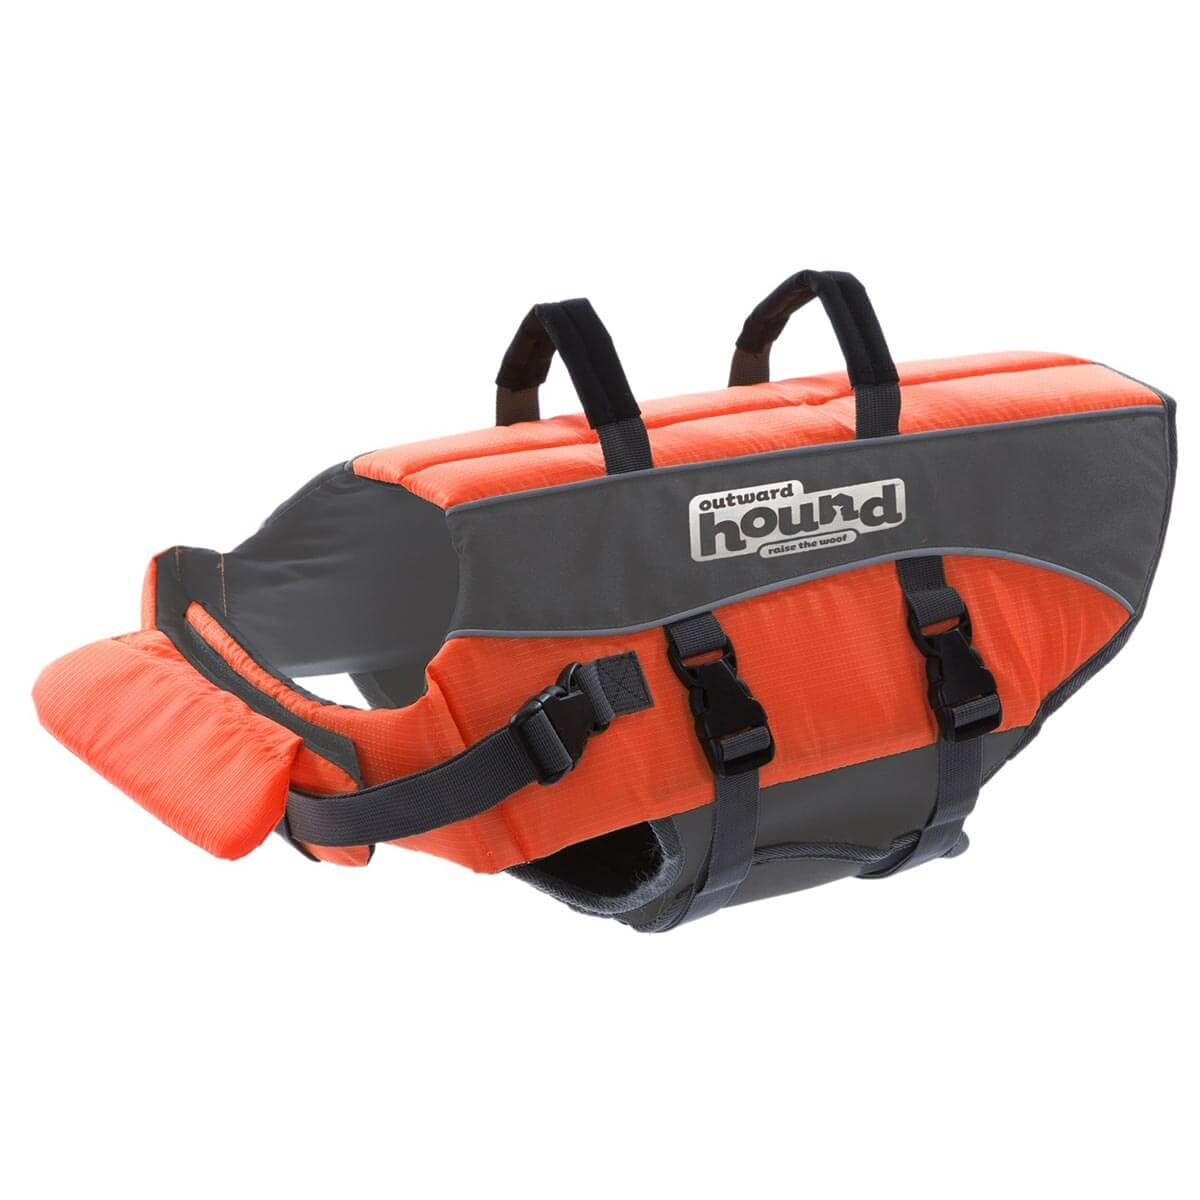 Outward Hound Dog Life Jacket Small Orange 6